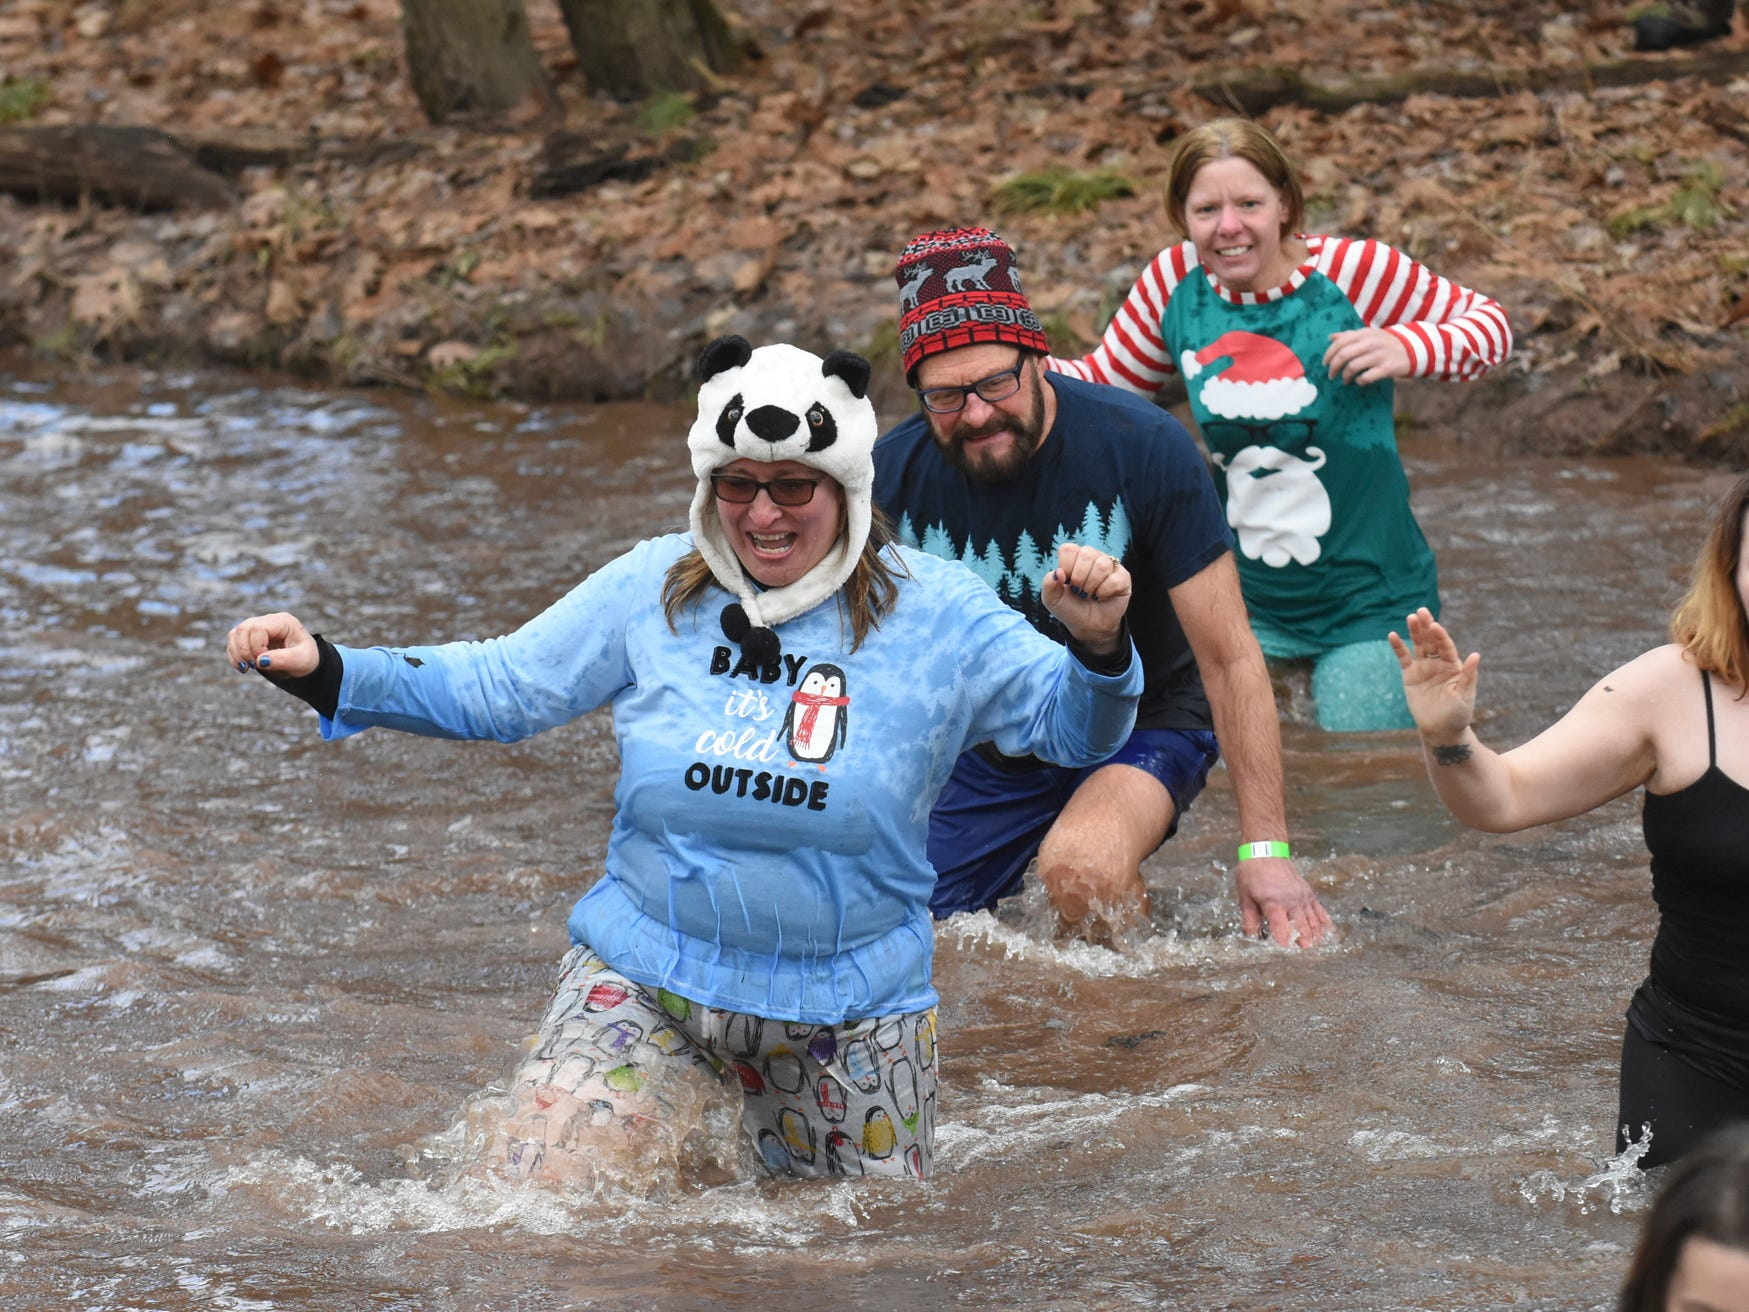 Dee Fisher, front, Randy Koppenhaver and Lisa Lasco, back, make their way across Pine Creek during the 10th annual Pine Creek Polar Bear Plunge in Valley View Park in Valley View, Pa. The event benefits Pine Creek Trout Nursery.